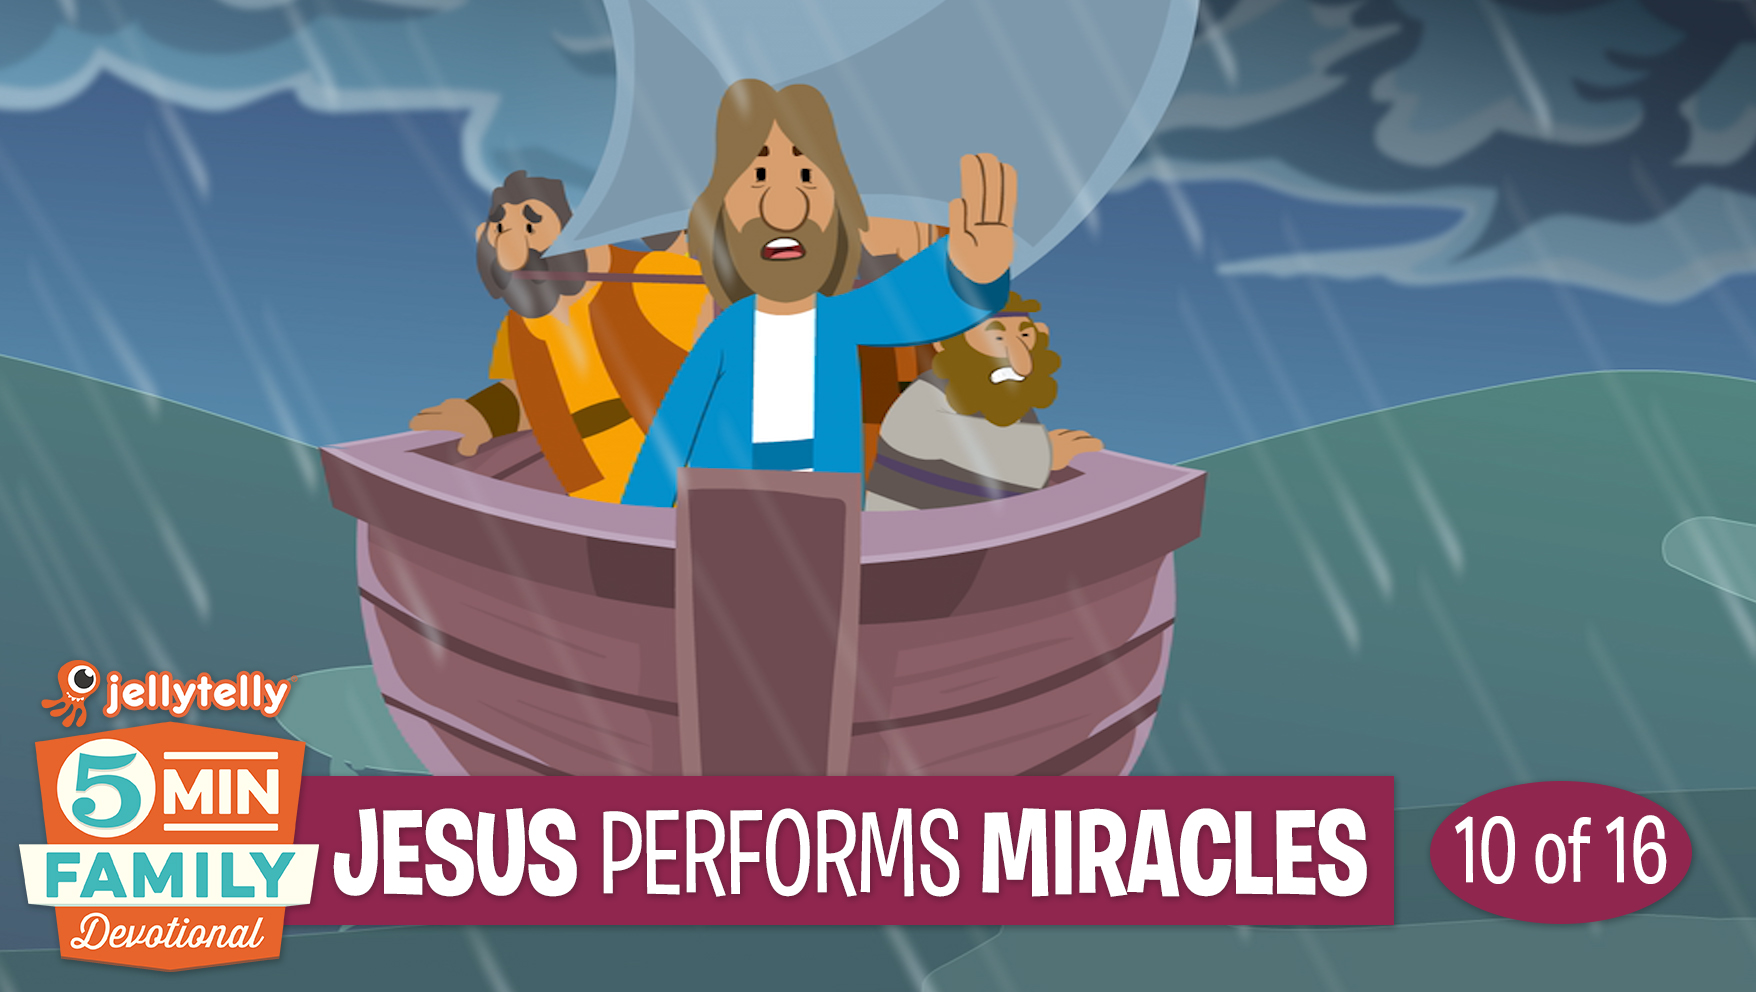 Jesus Performs Miracles: Jesus 5 Minute Family Devotional